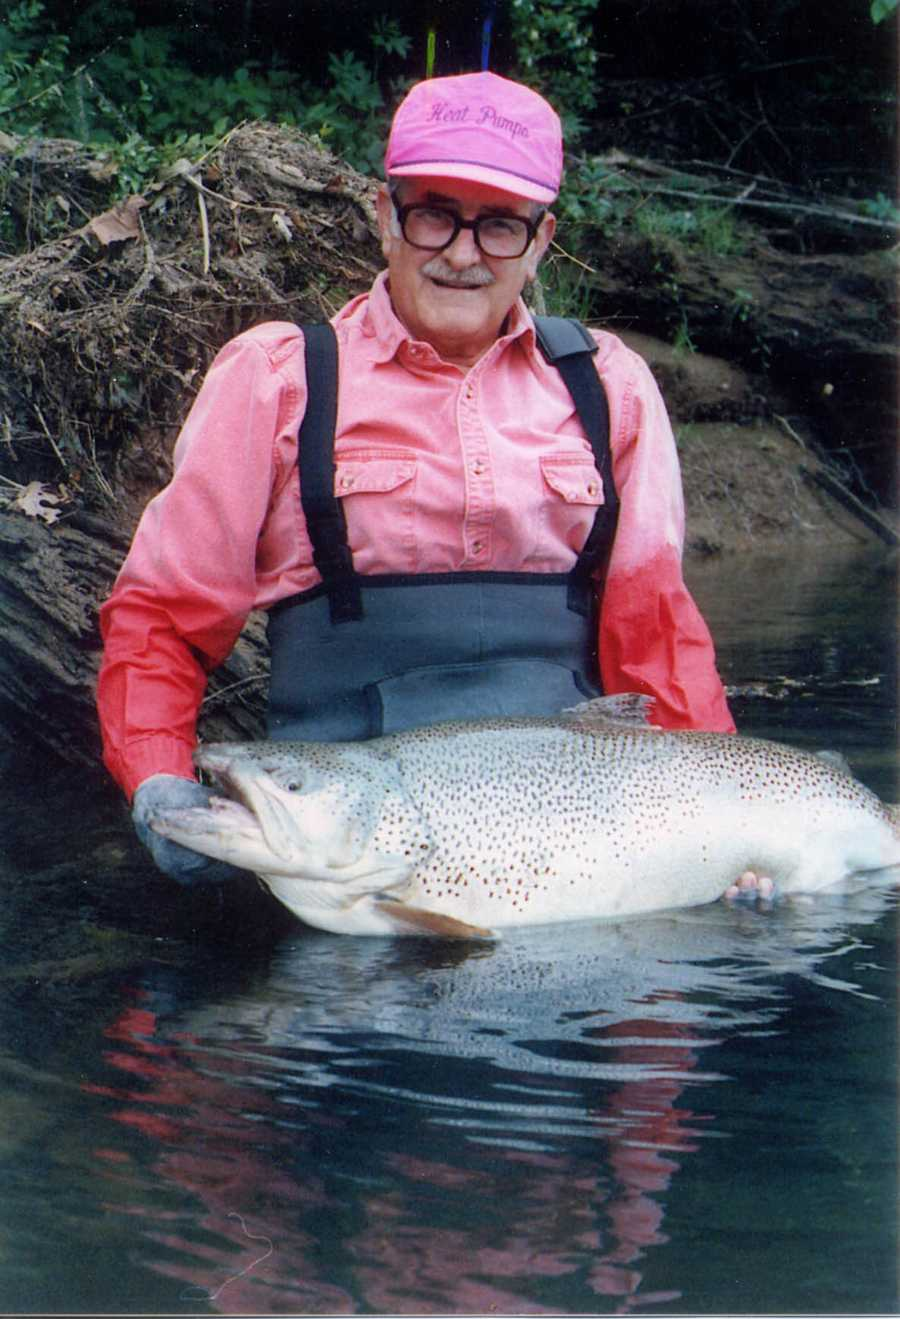 """Howard """"Rip """" Collins set the 4-pound-line class record for Brown Trout when he caught this 40-pound, 4-ounce fish in the Little Red River in 1992."""